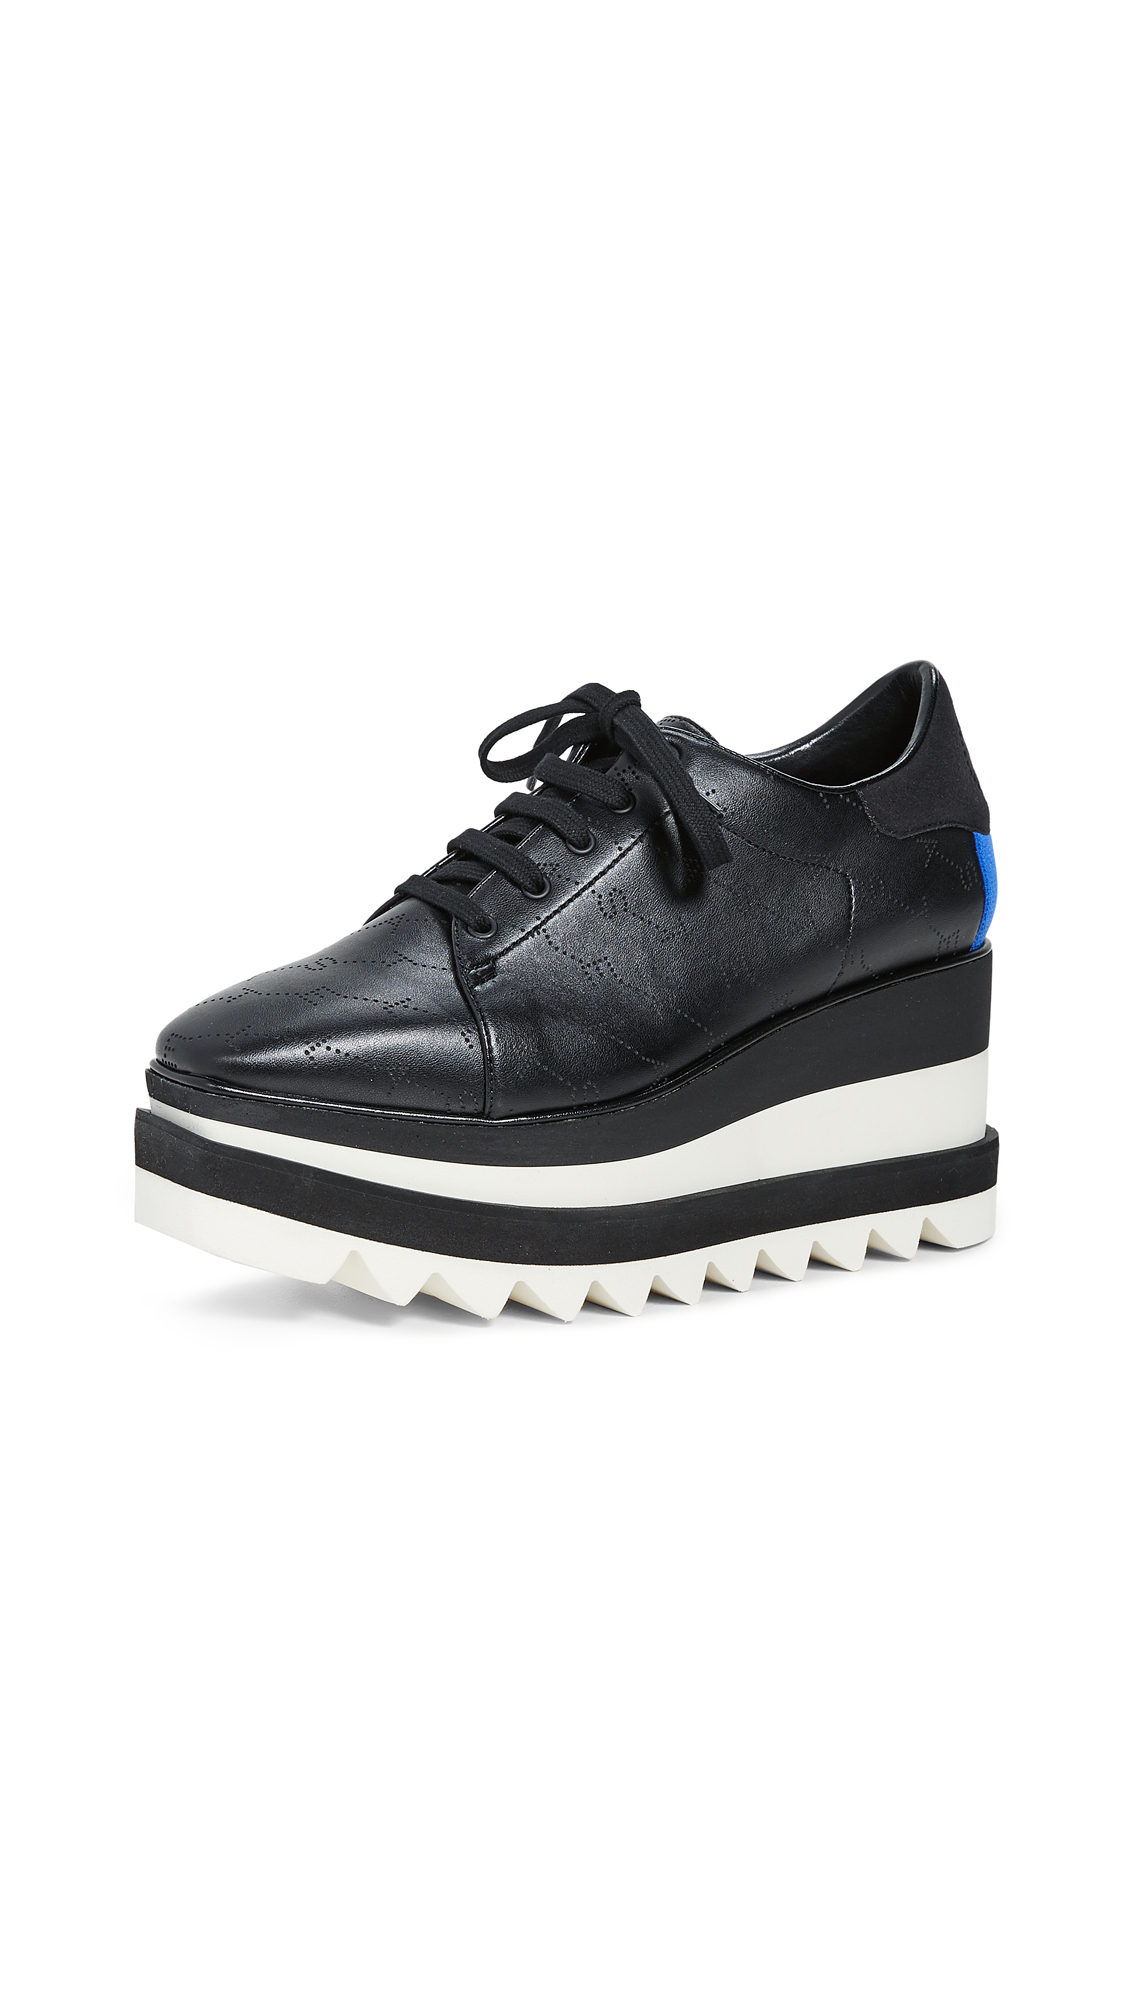 Stella McCartney Sneakelyse Lace Up Shoes – 40% Off Sale